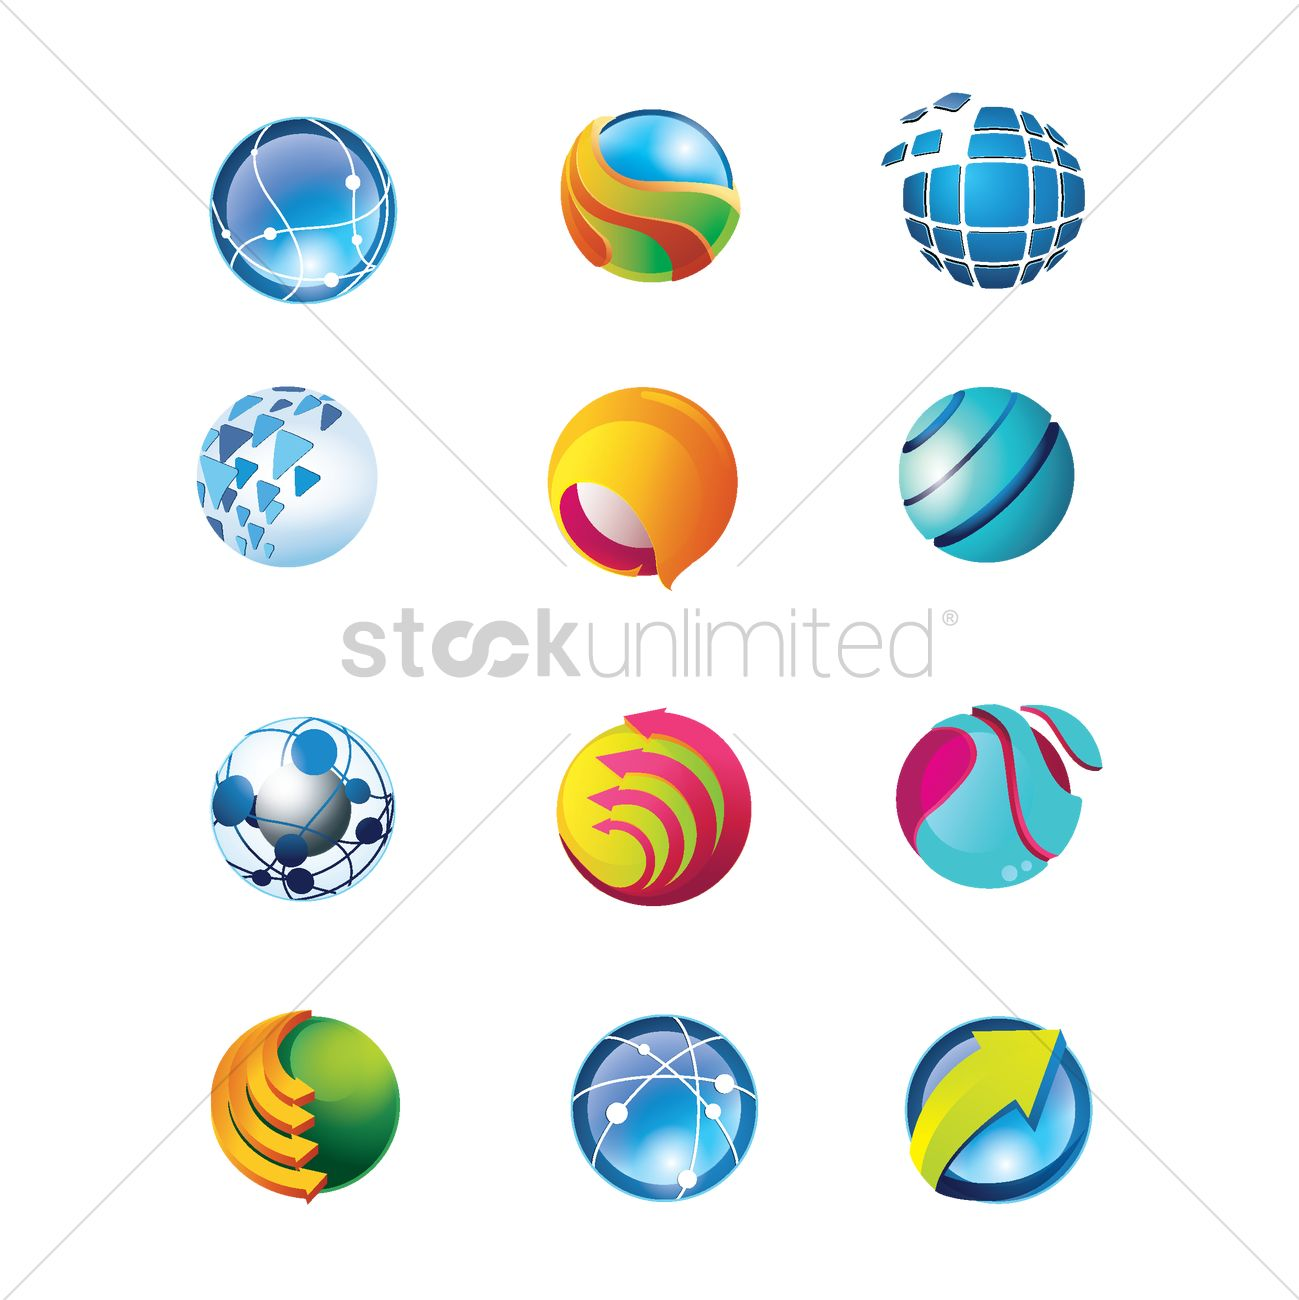 Spherical logo element design collection Vector Image.